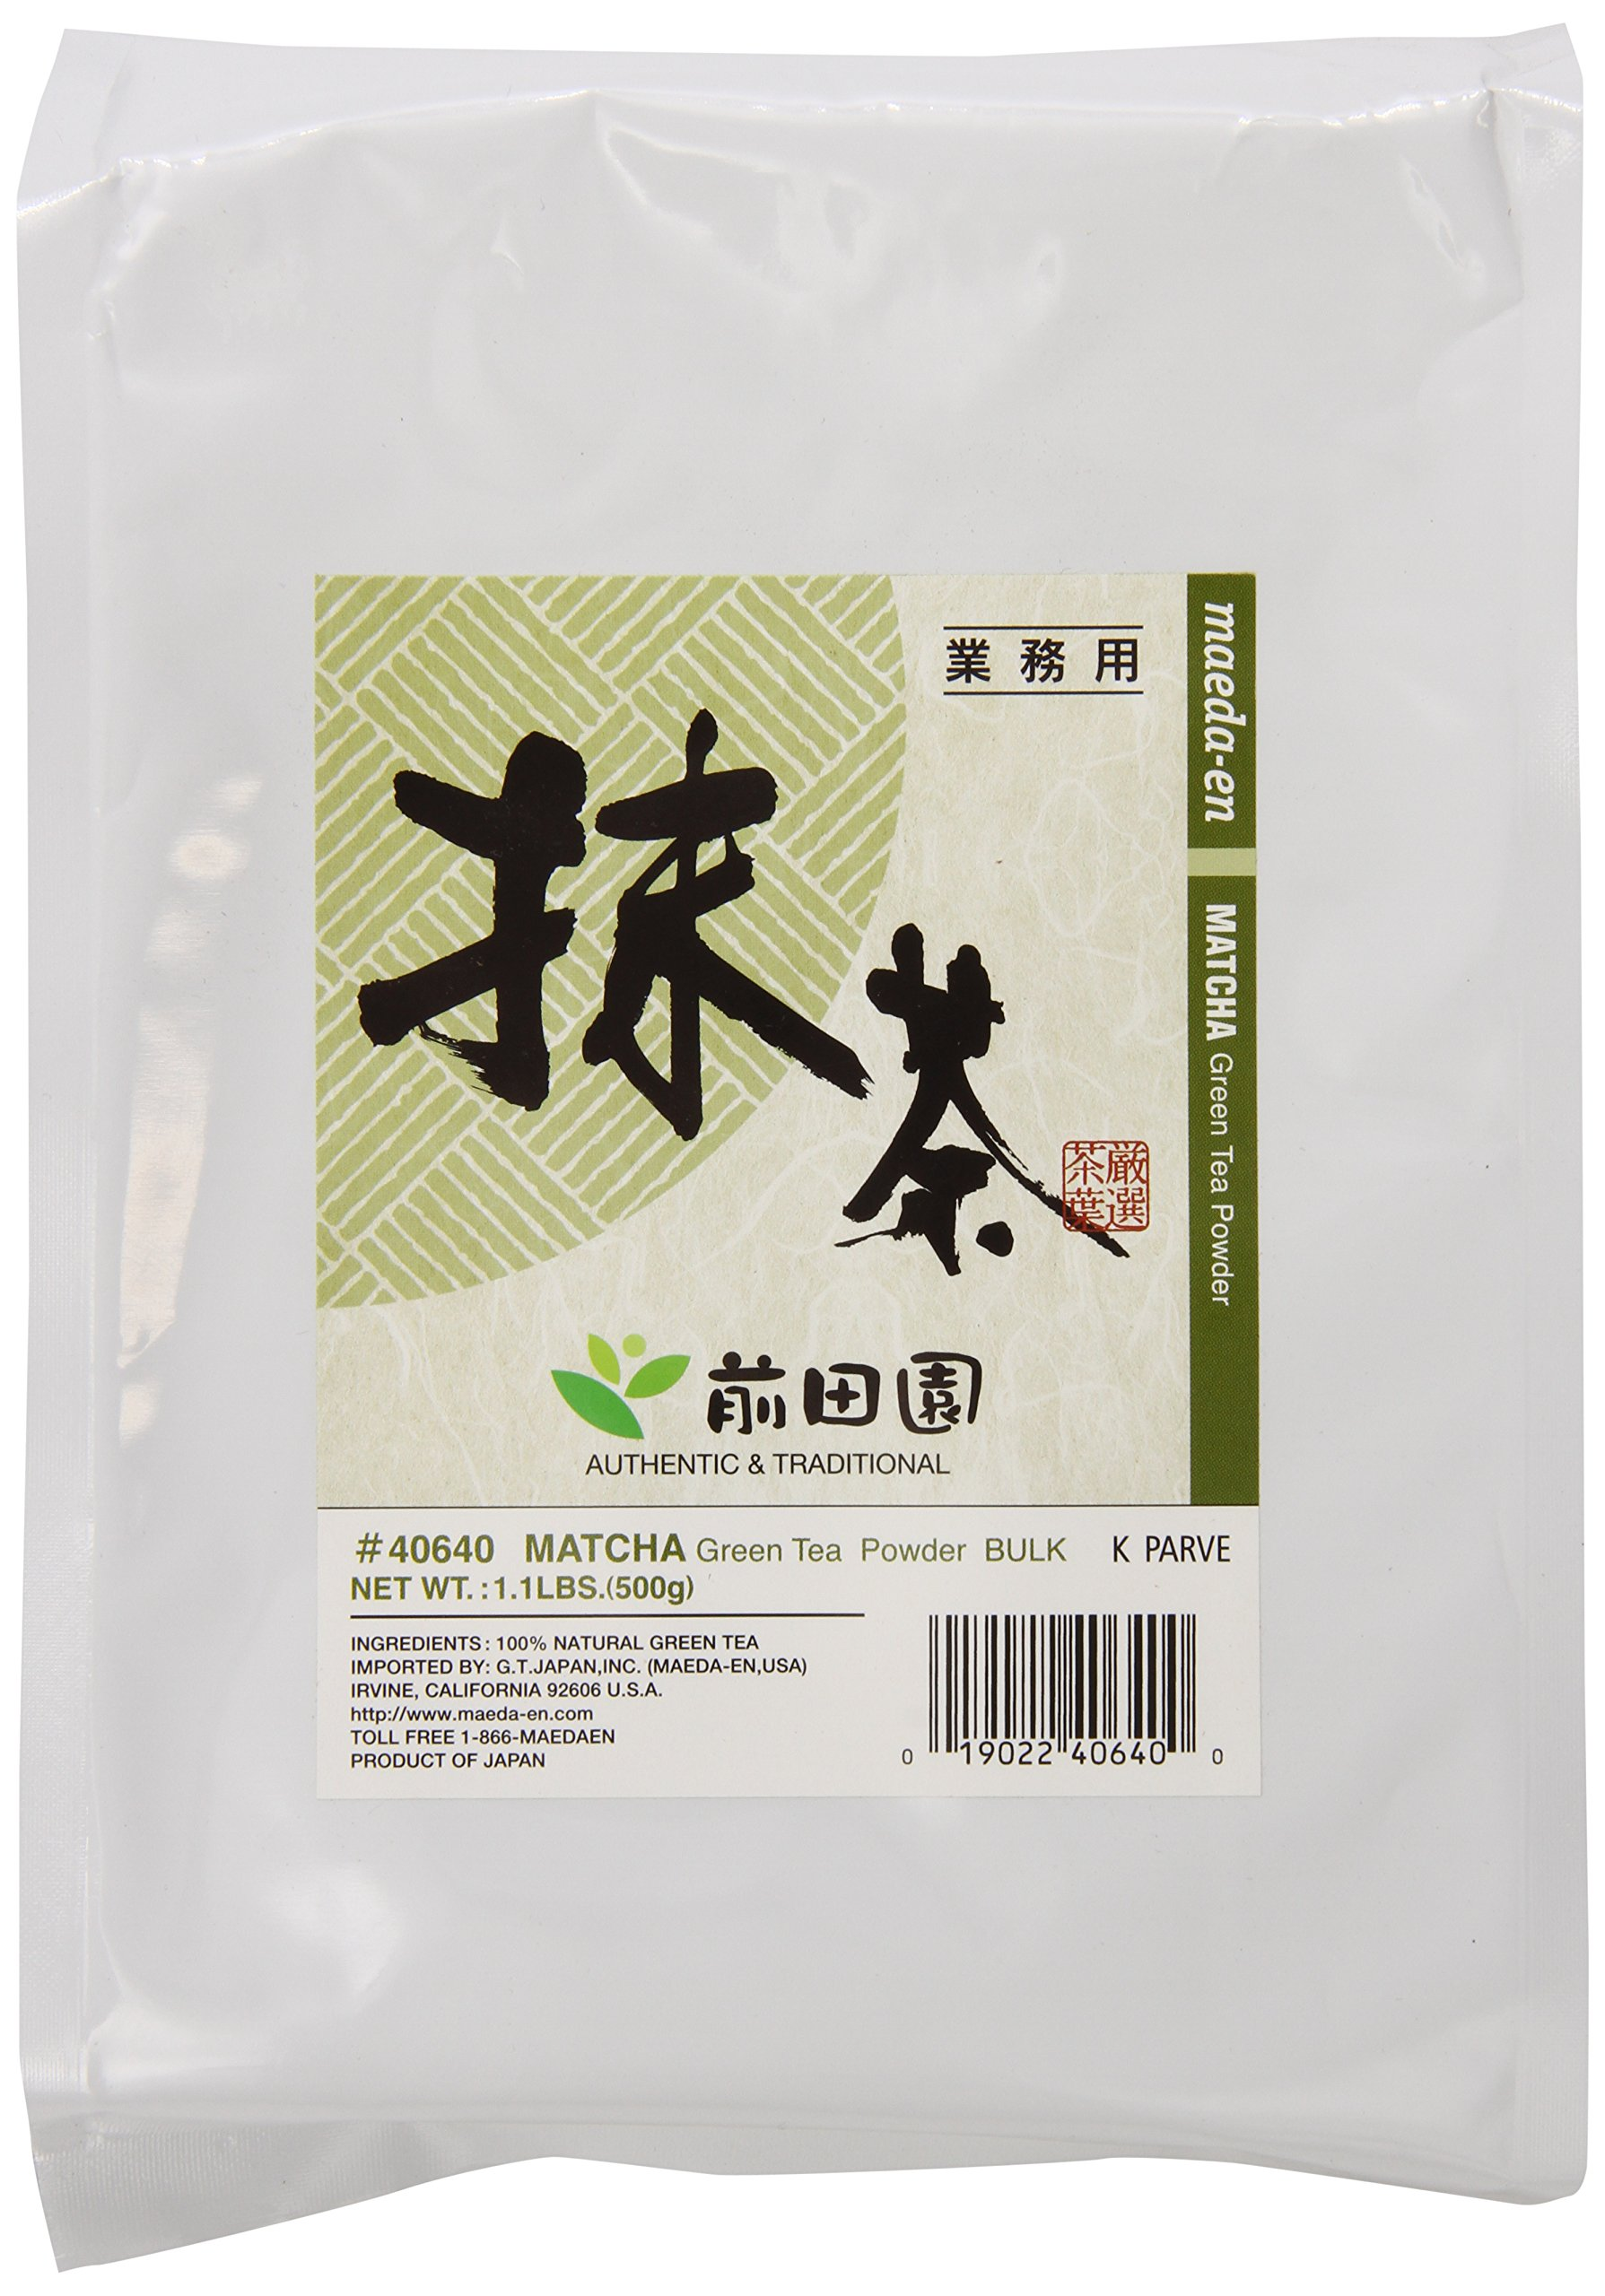 Maeda-En Matcha Powder Bulk, Matcha Green Tea Powder - 1.1 LB Large Bag by MAEDA-EN